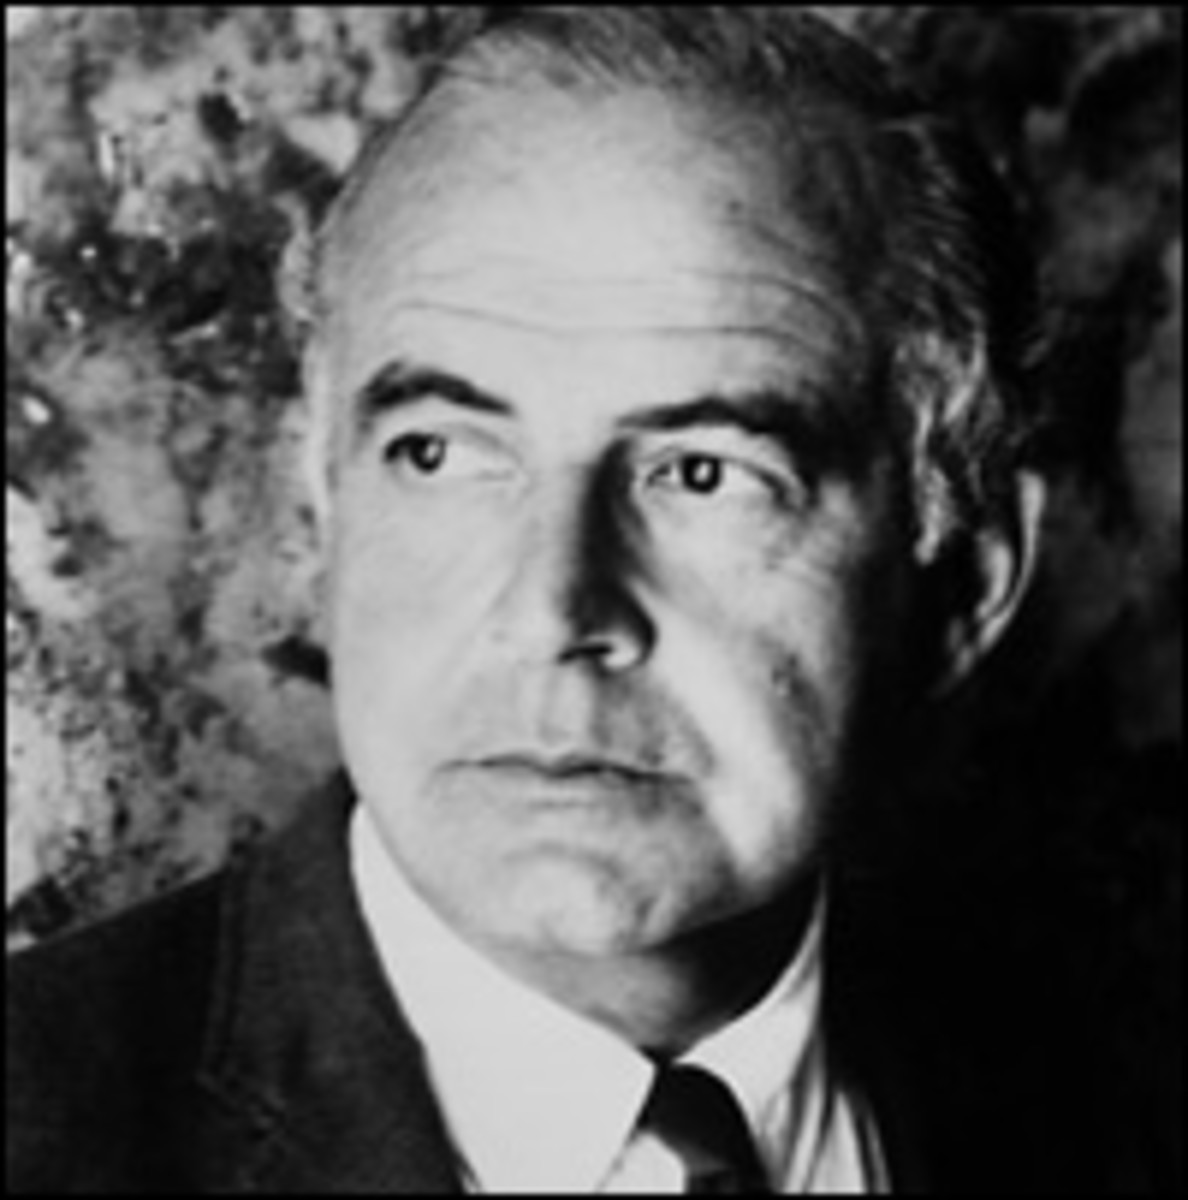 The Neo-Romanticist, Samuel Barber.